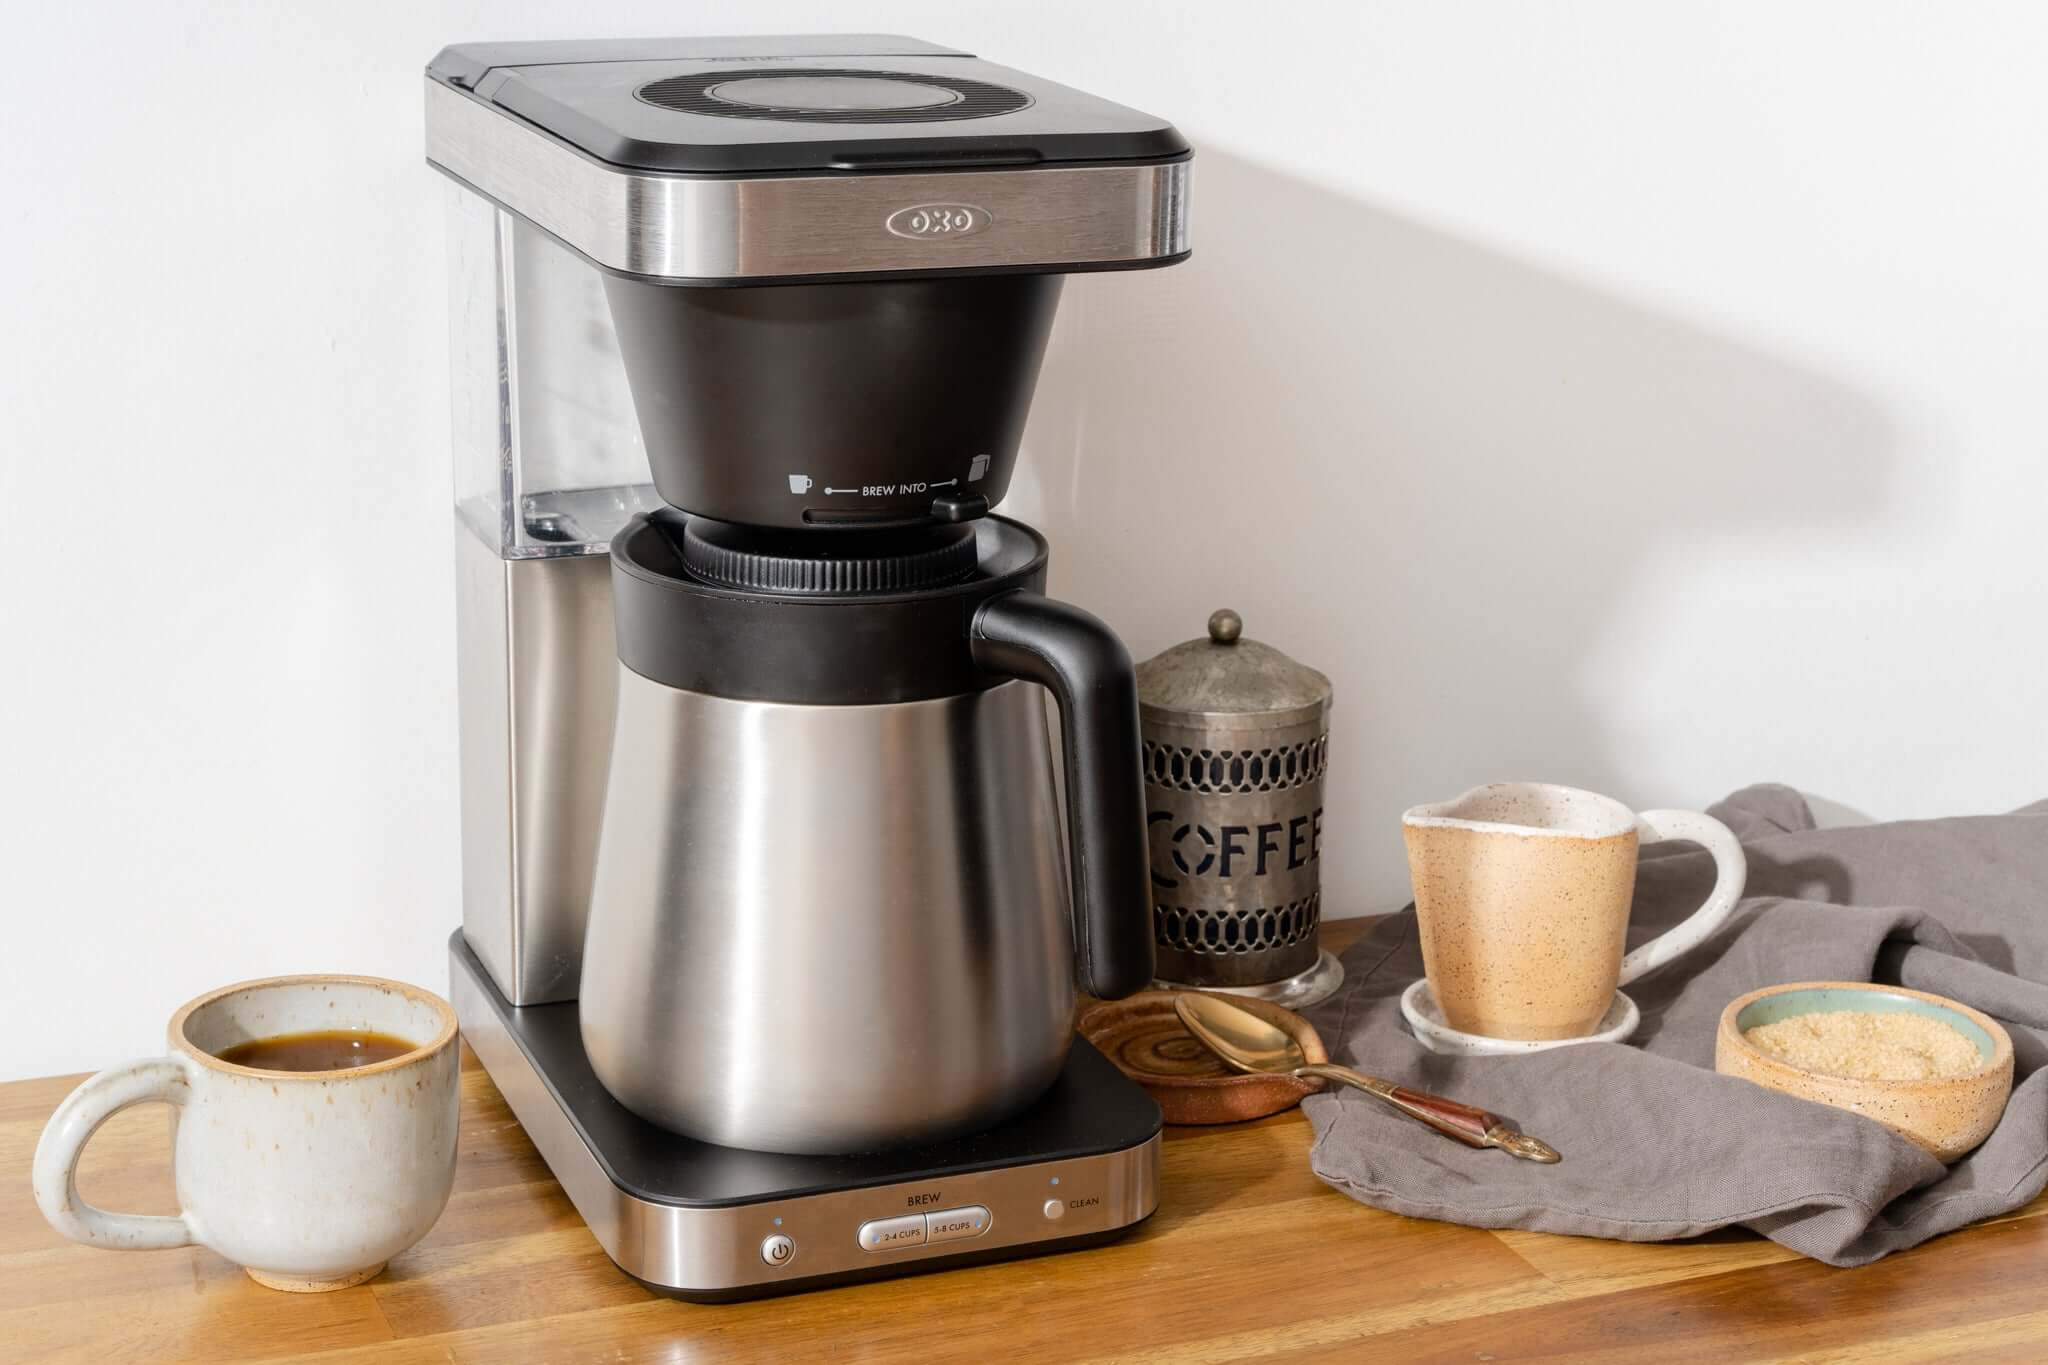 Common Mistakes People Make While Brewing Coffee